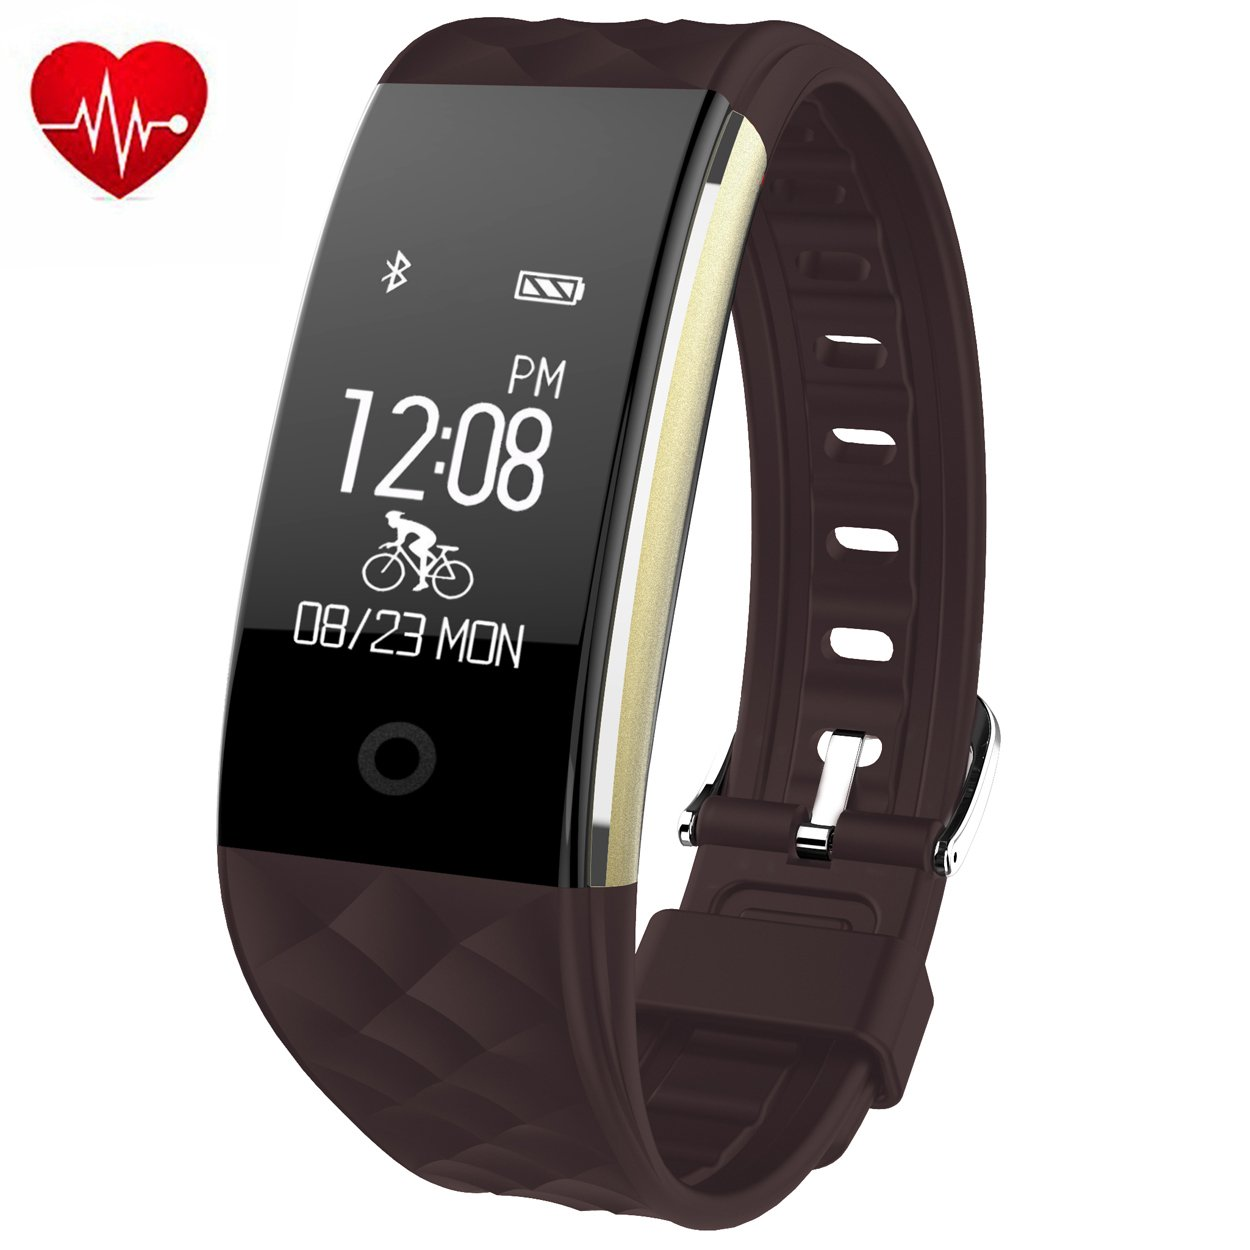 Best Activity Tracker 2020.Top 20 Best Fitness Trackers For Cyclists 2018 2020 On